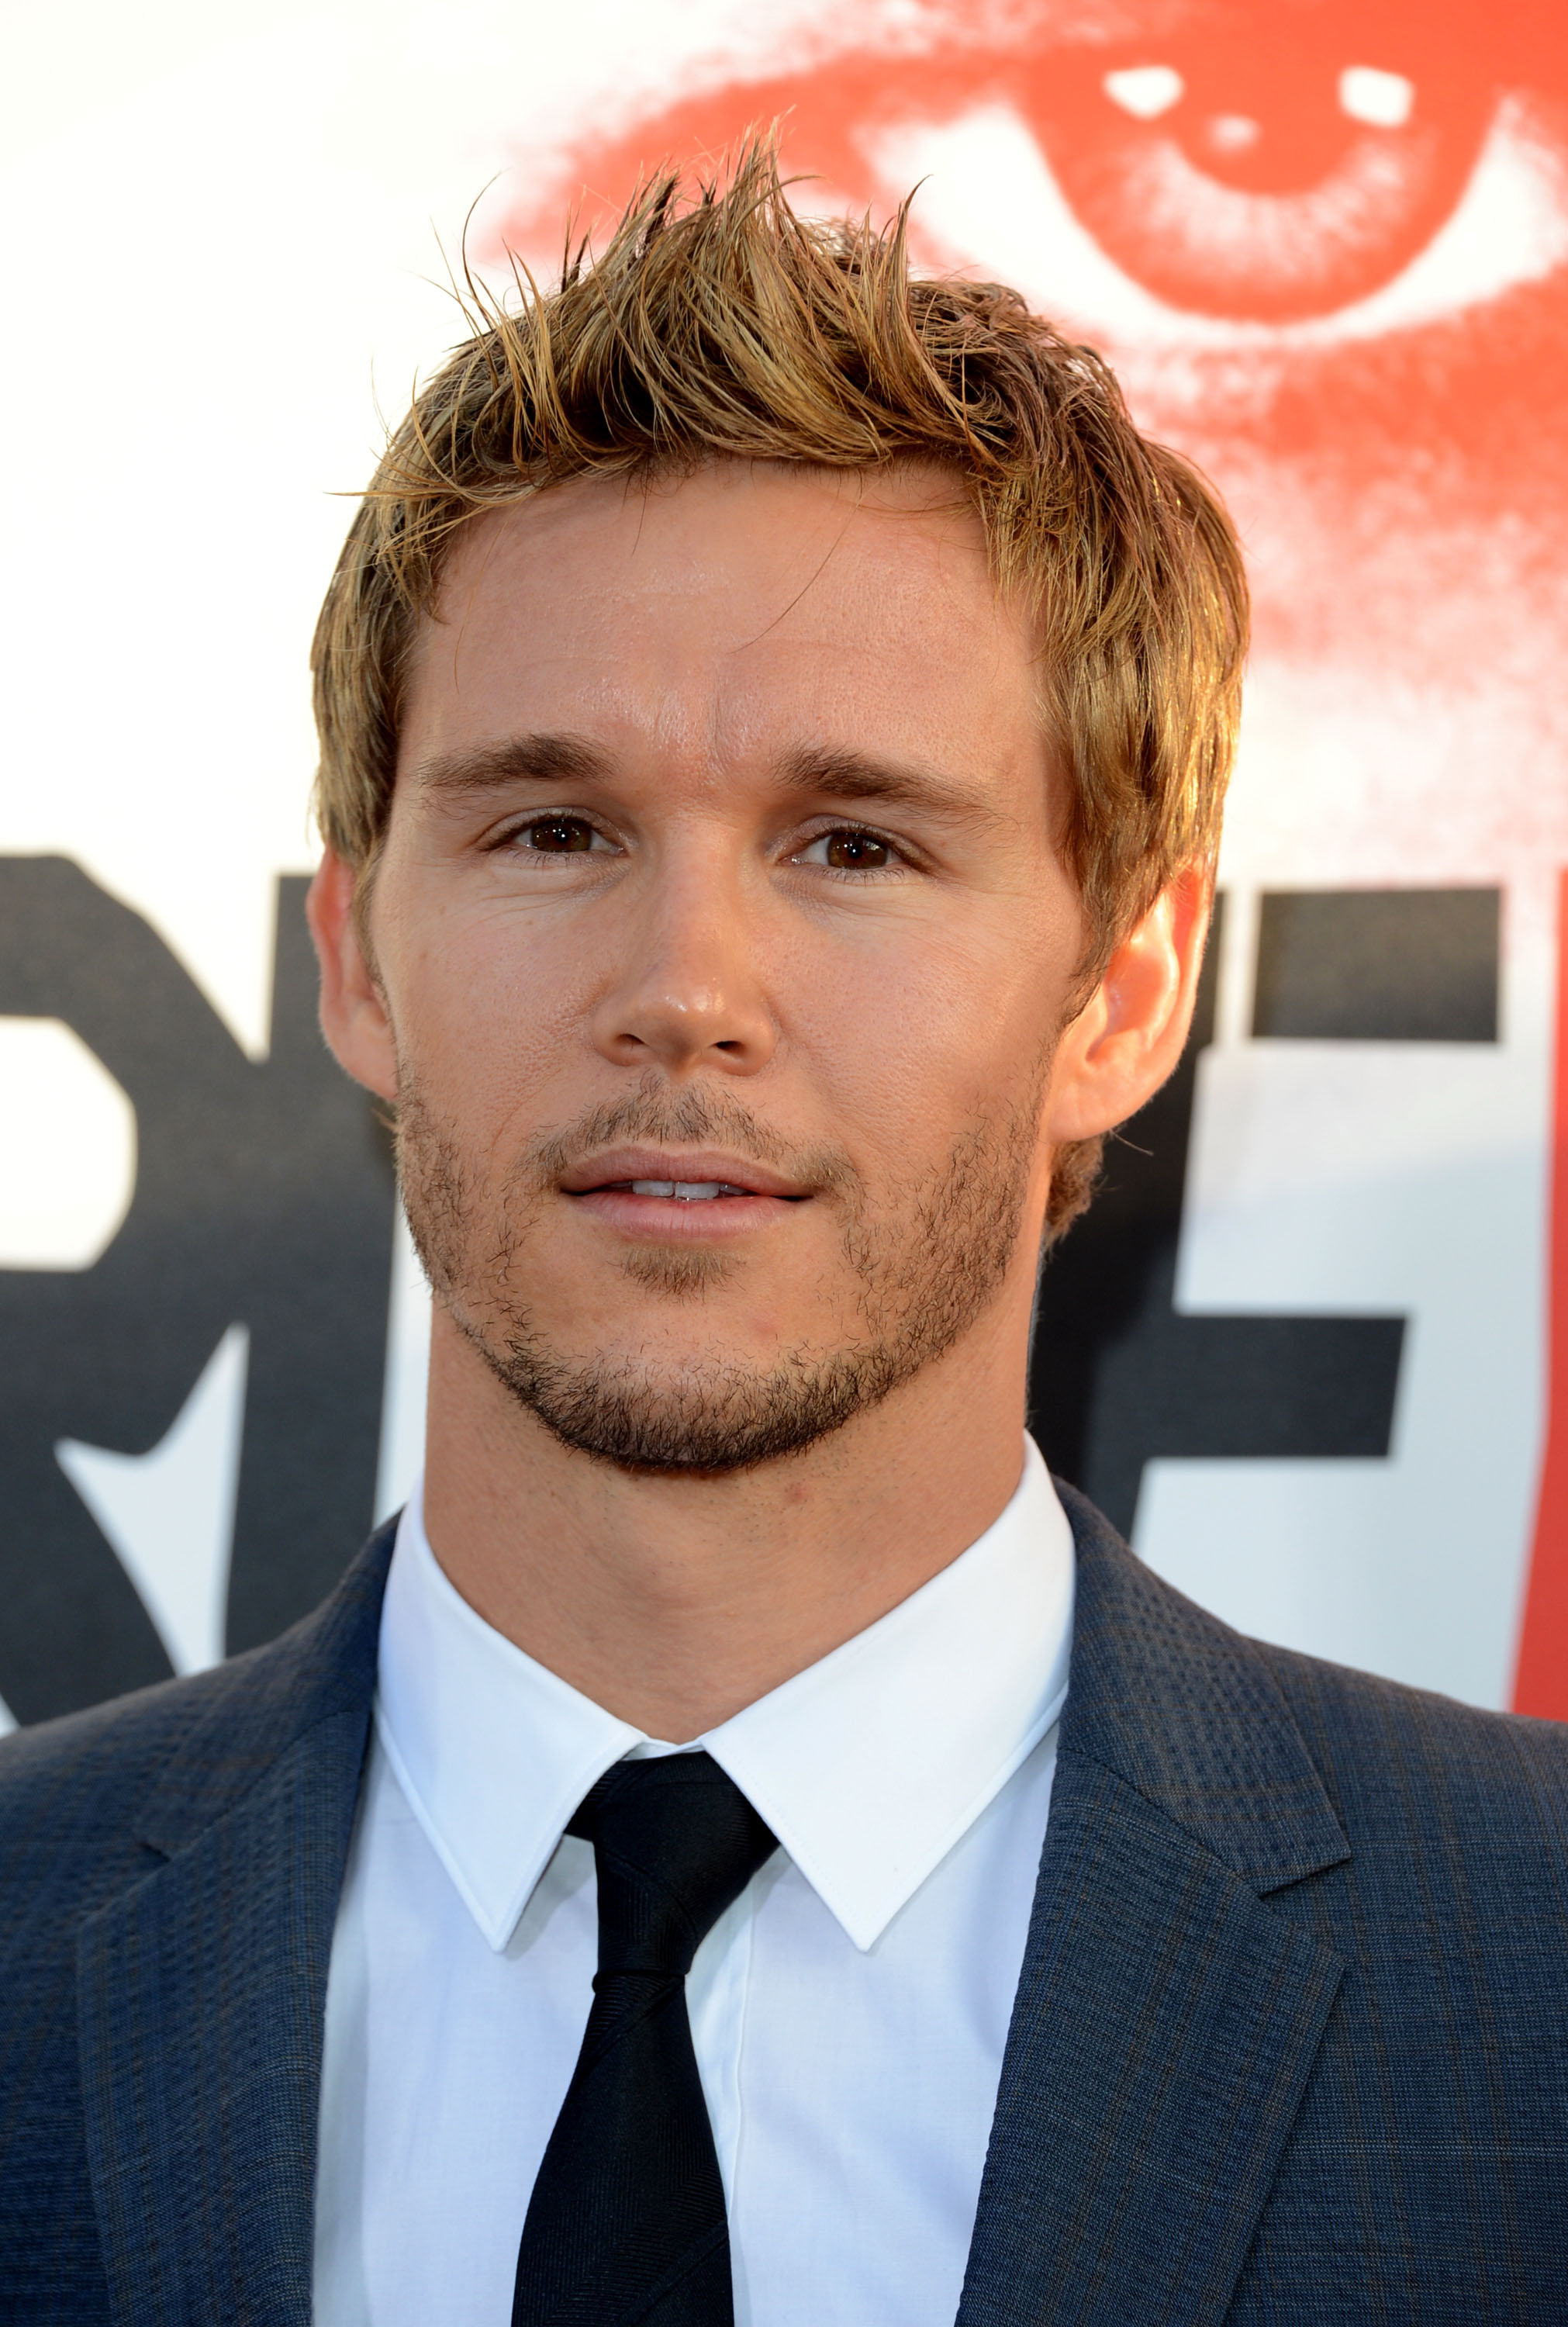 ryan kwanten celebheightsryan kwanten wdw, ryan kwanten films, ryan kwanten instagram, ryan kwanten height, ryan kwanten workout, ryan kwanten celebheights, ryan kwanten, ryan kwanten married, ryan kwanten wife, ryan kwanten interview, ryan kwanten imdb, ryan kwanten true blood, ryan kwanten diet, ryan kwanten eric andre